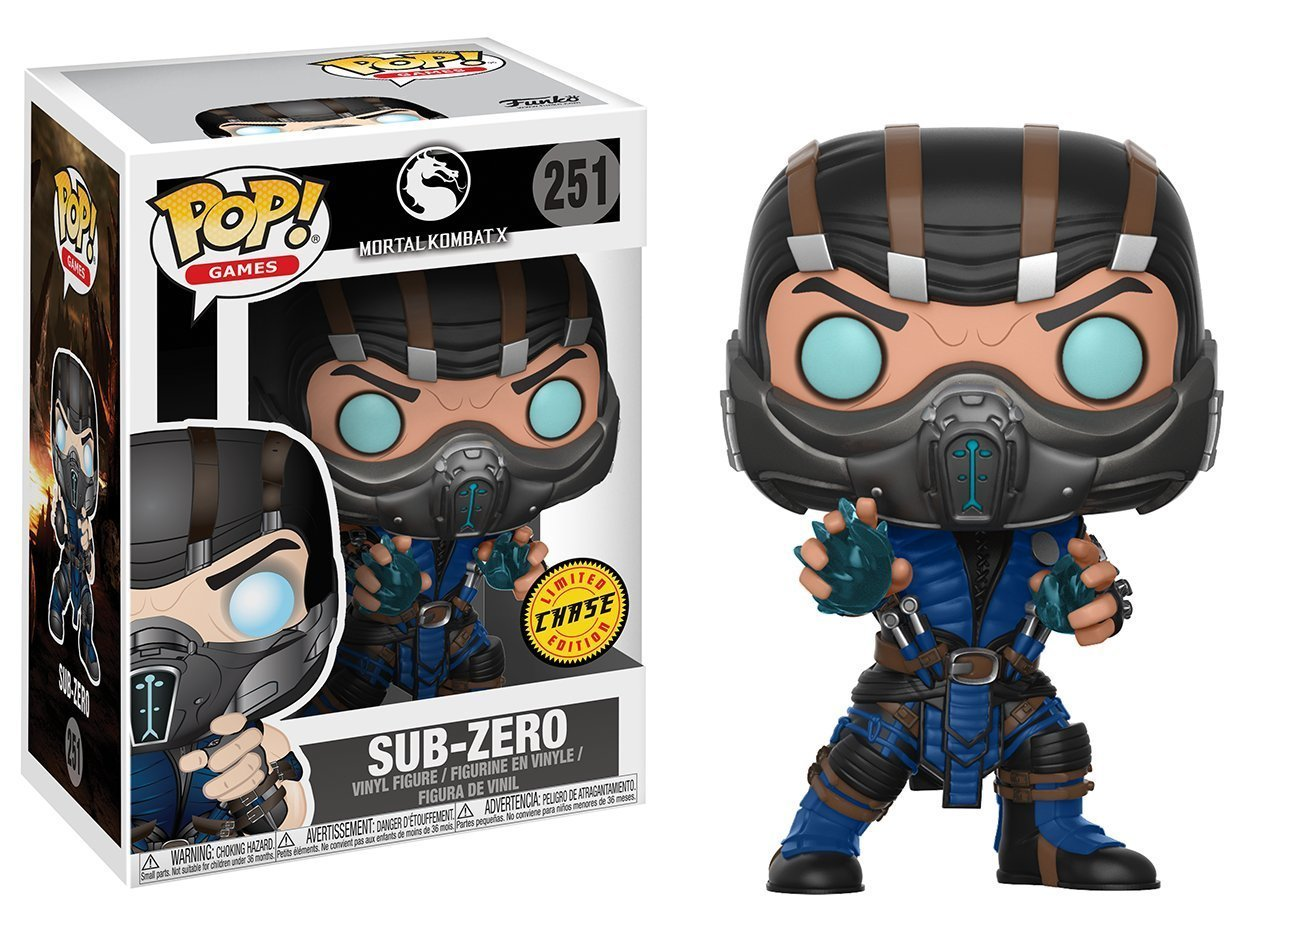 Sub-Zero CHASE Limited Edition Vinyl Figure Funko Pop Bundled with Pop BOX PROTECTOR CASE Games: Mortal Kombat